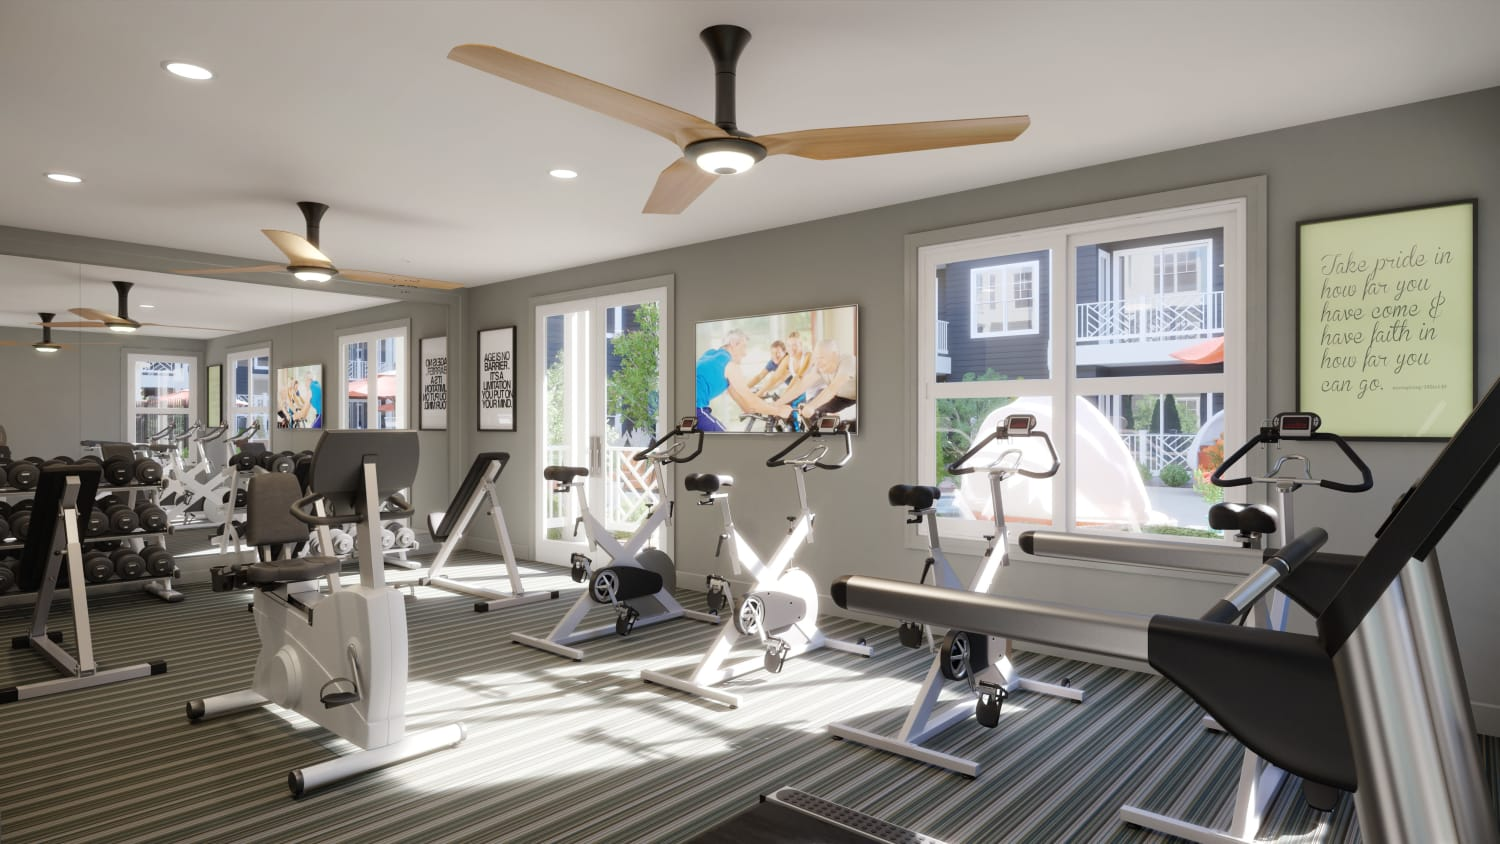 Rendering of Fitness Center at Avenida Cool Springs senior living apartments in Franklin, Tennessee